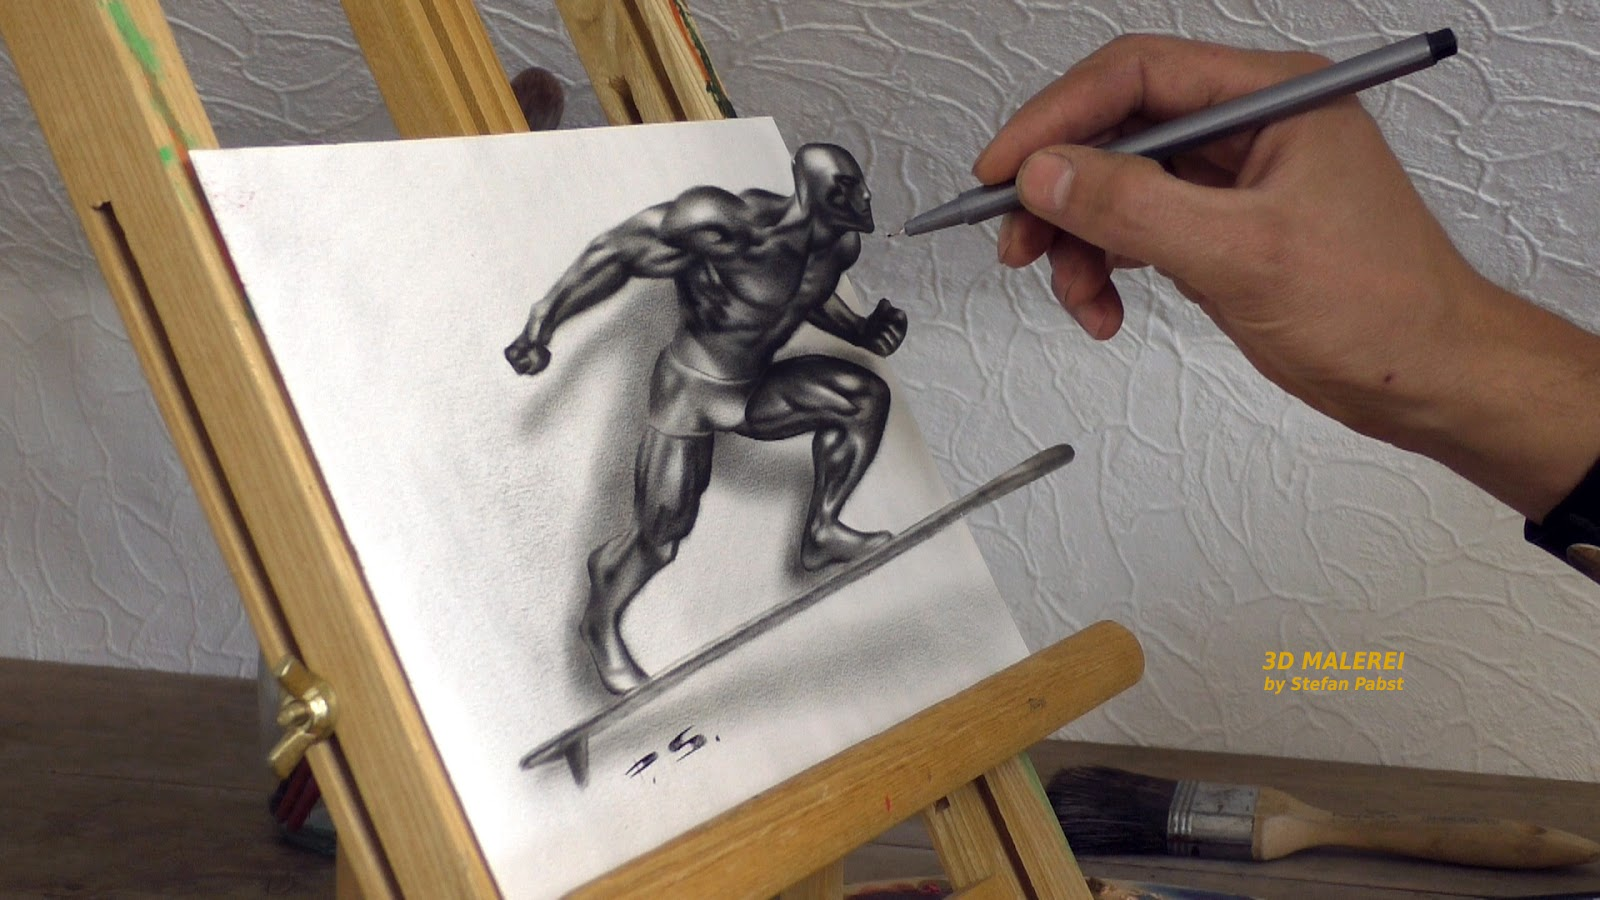 07-Silver-Surfer-Fantastic-Four-Stefan-Pabst-3D-Optical-Illusions-Drawings-and-Paintings-www-designstack-co